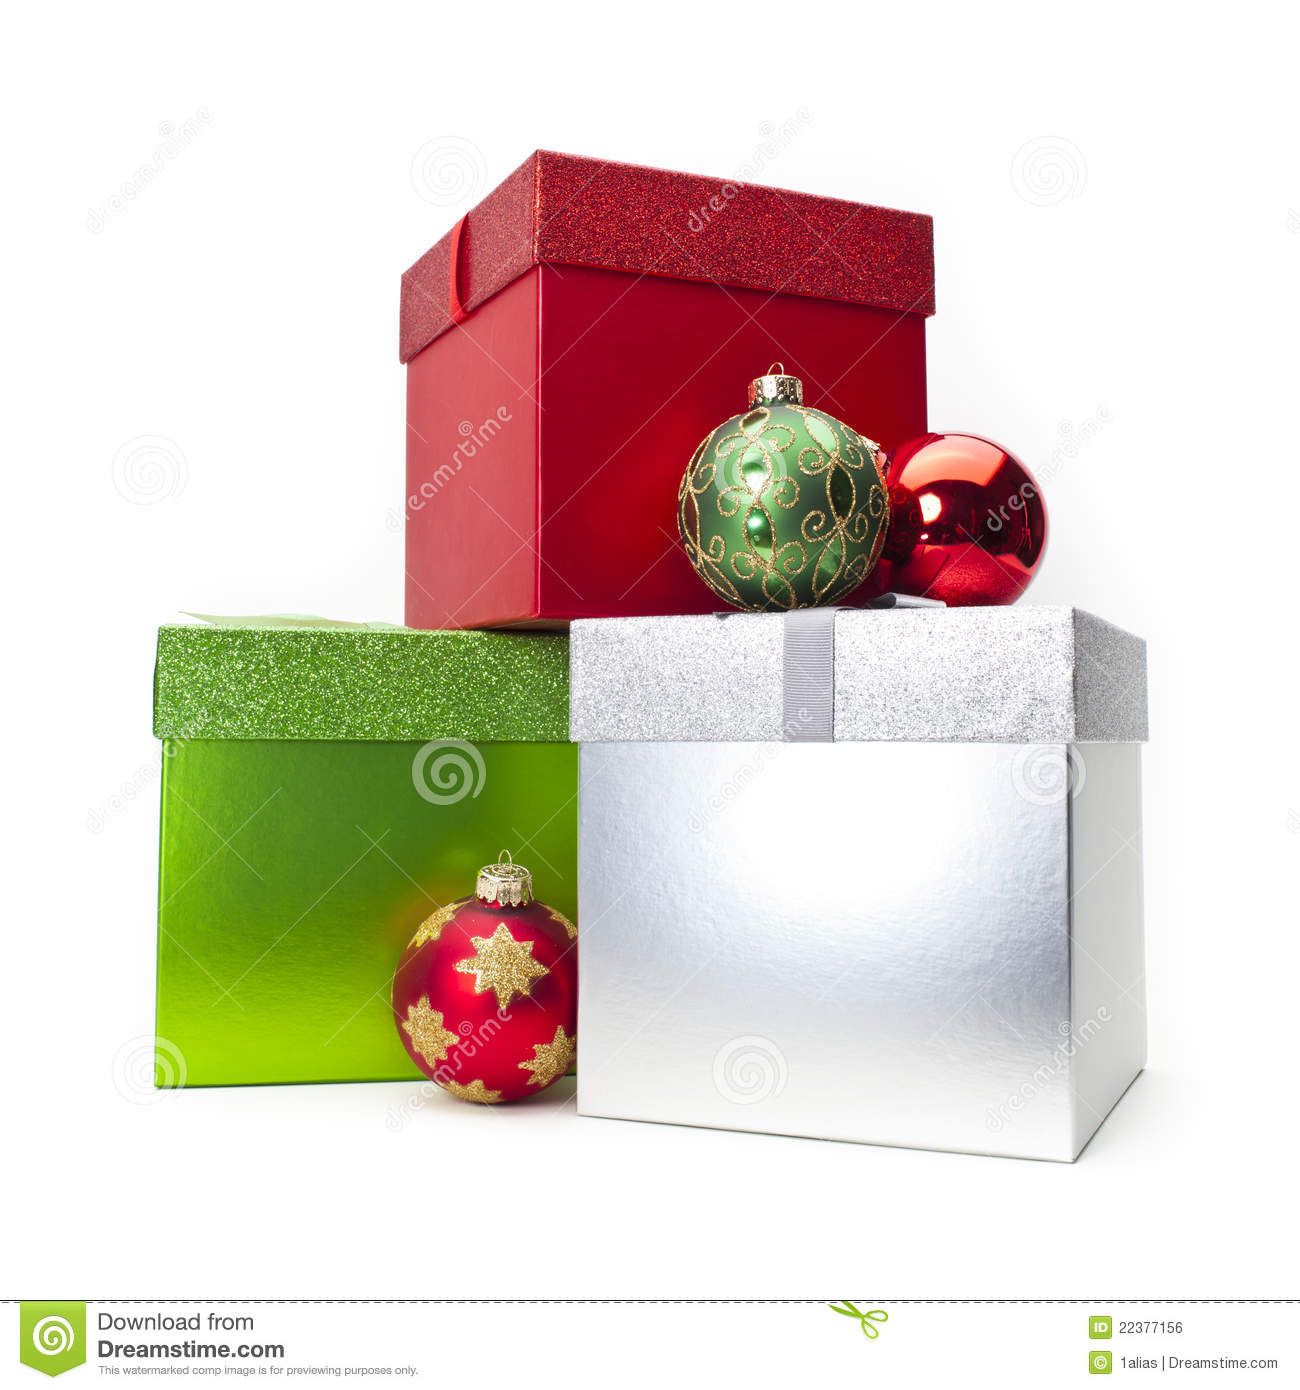 Christmas gift box images merry christmas and happy new year 2018 the universal joy of christmas negle Images